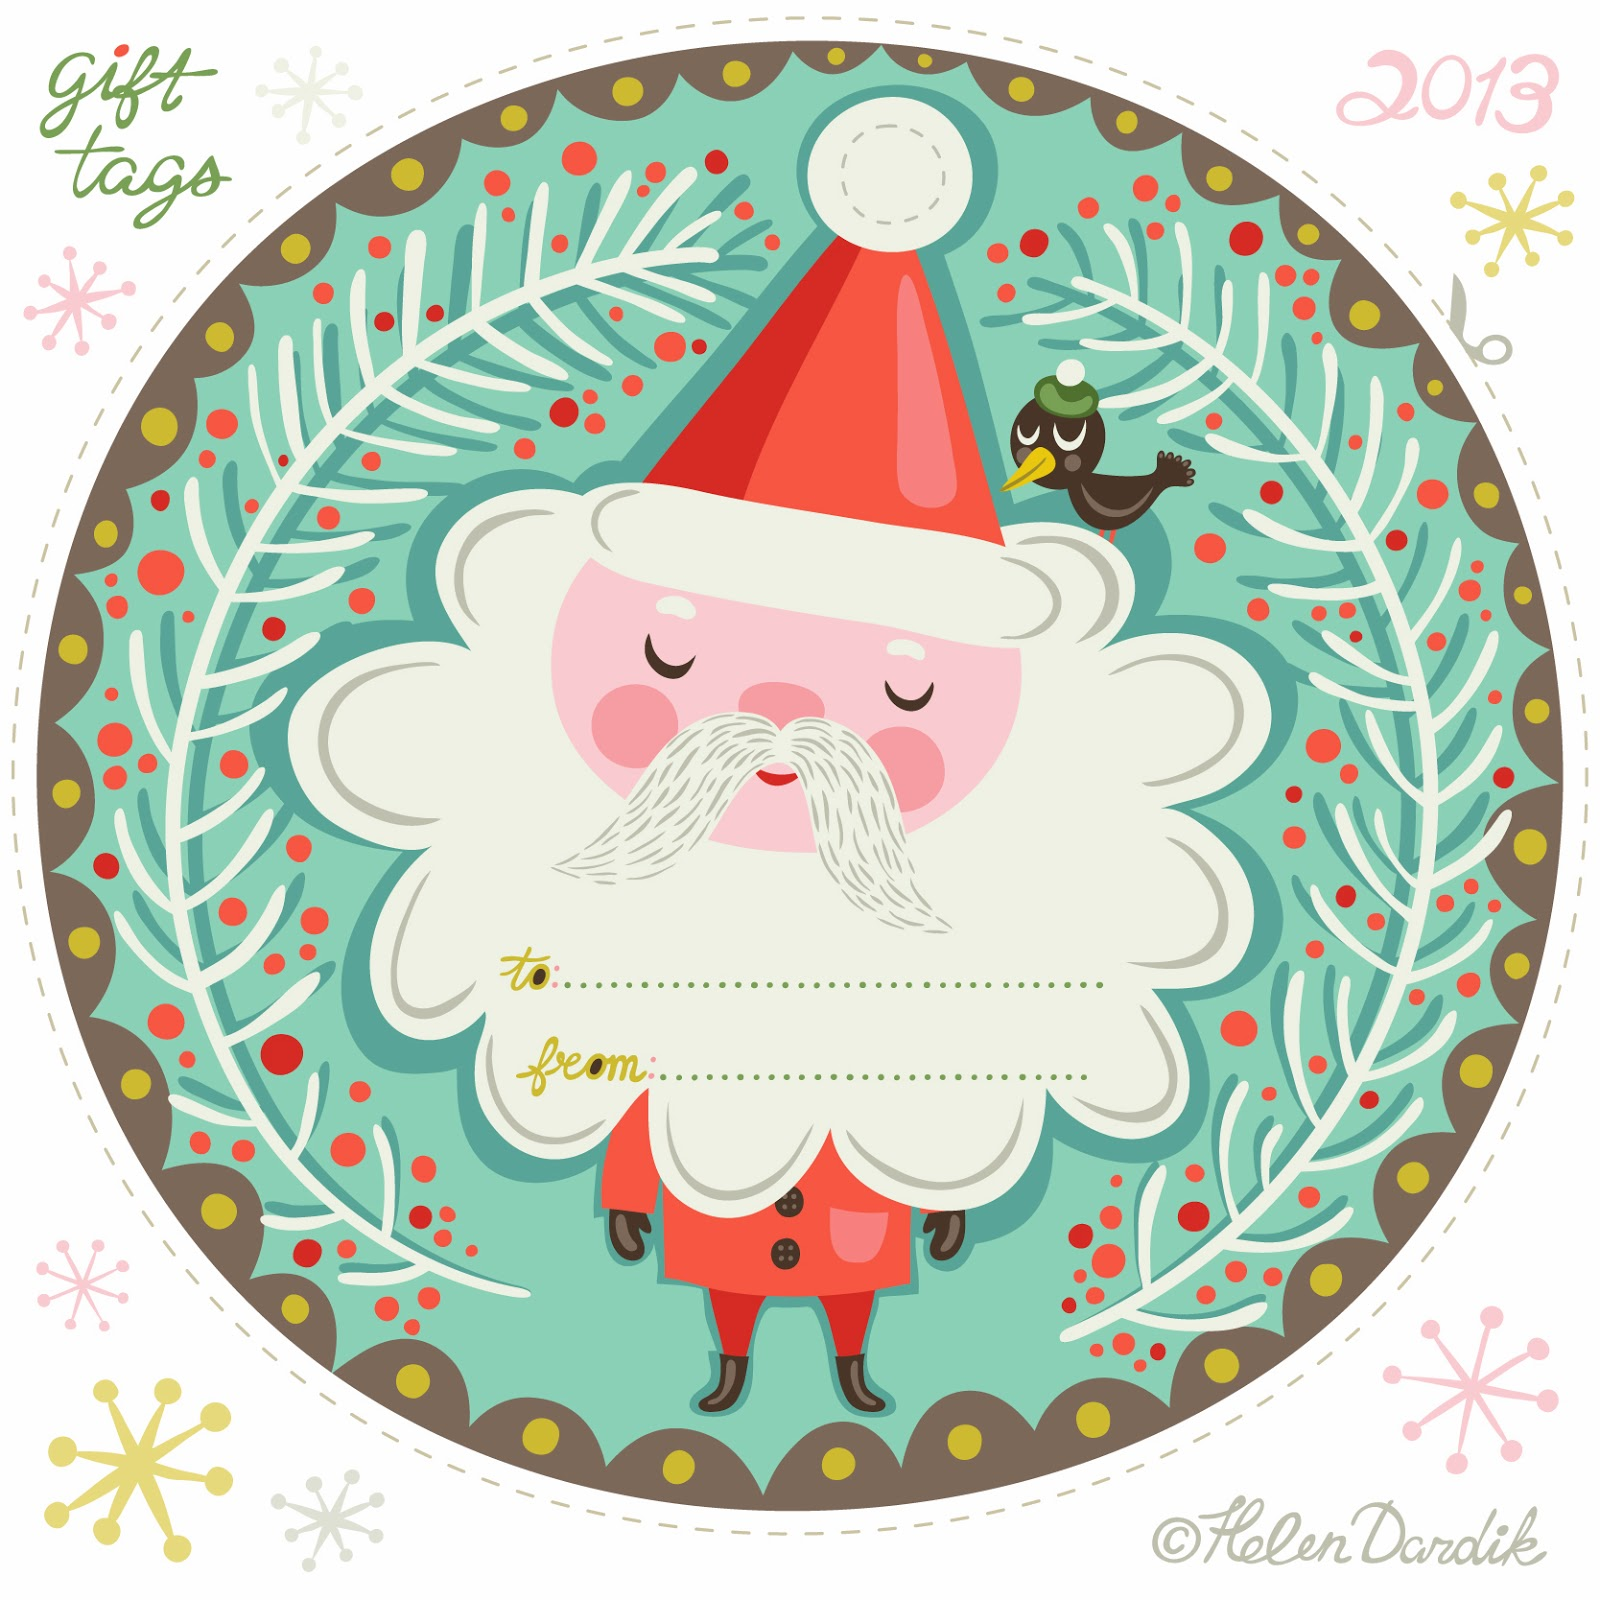 47 Free Printable Christmas Gift Tags That You Can Edit And